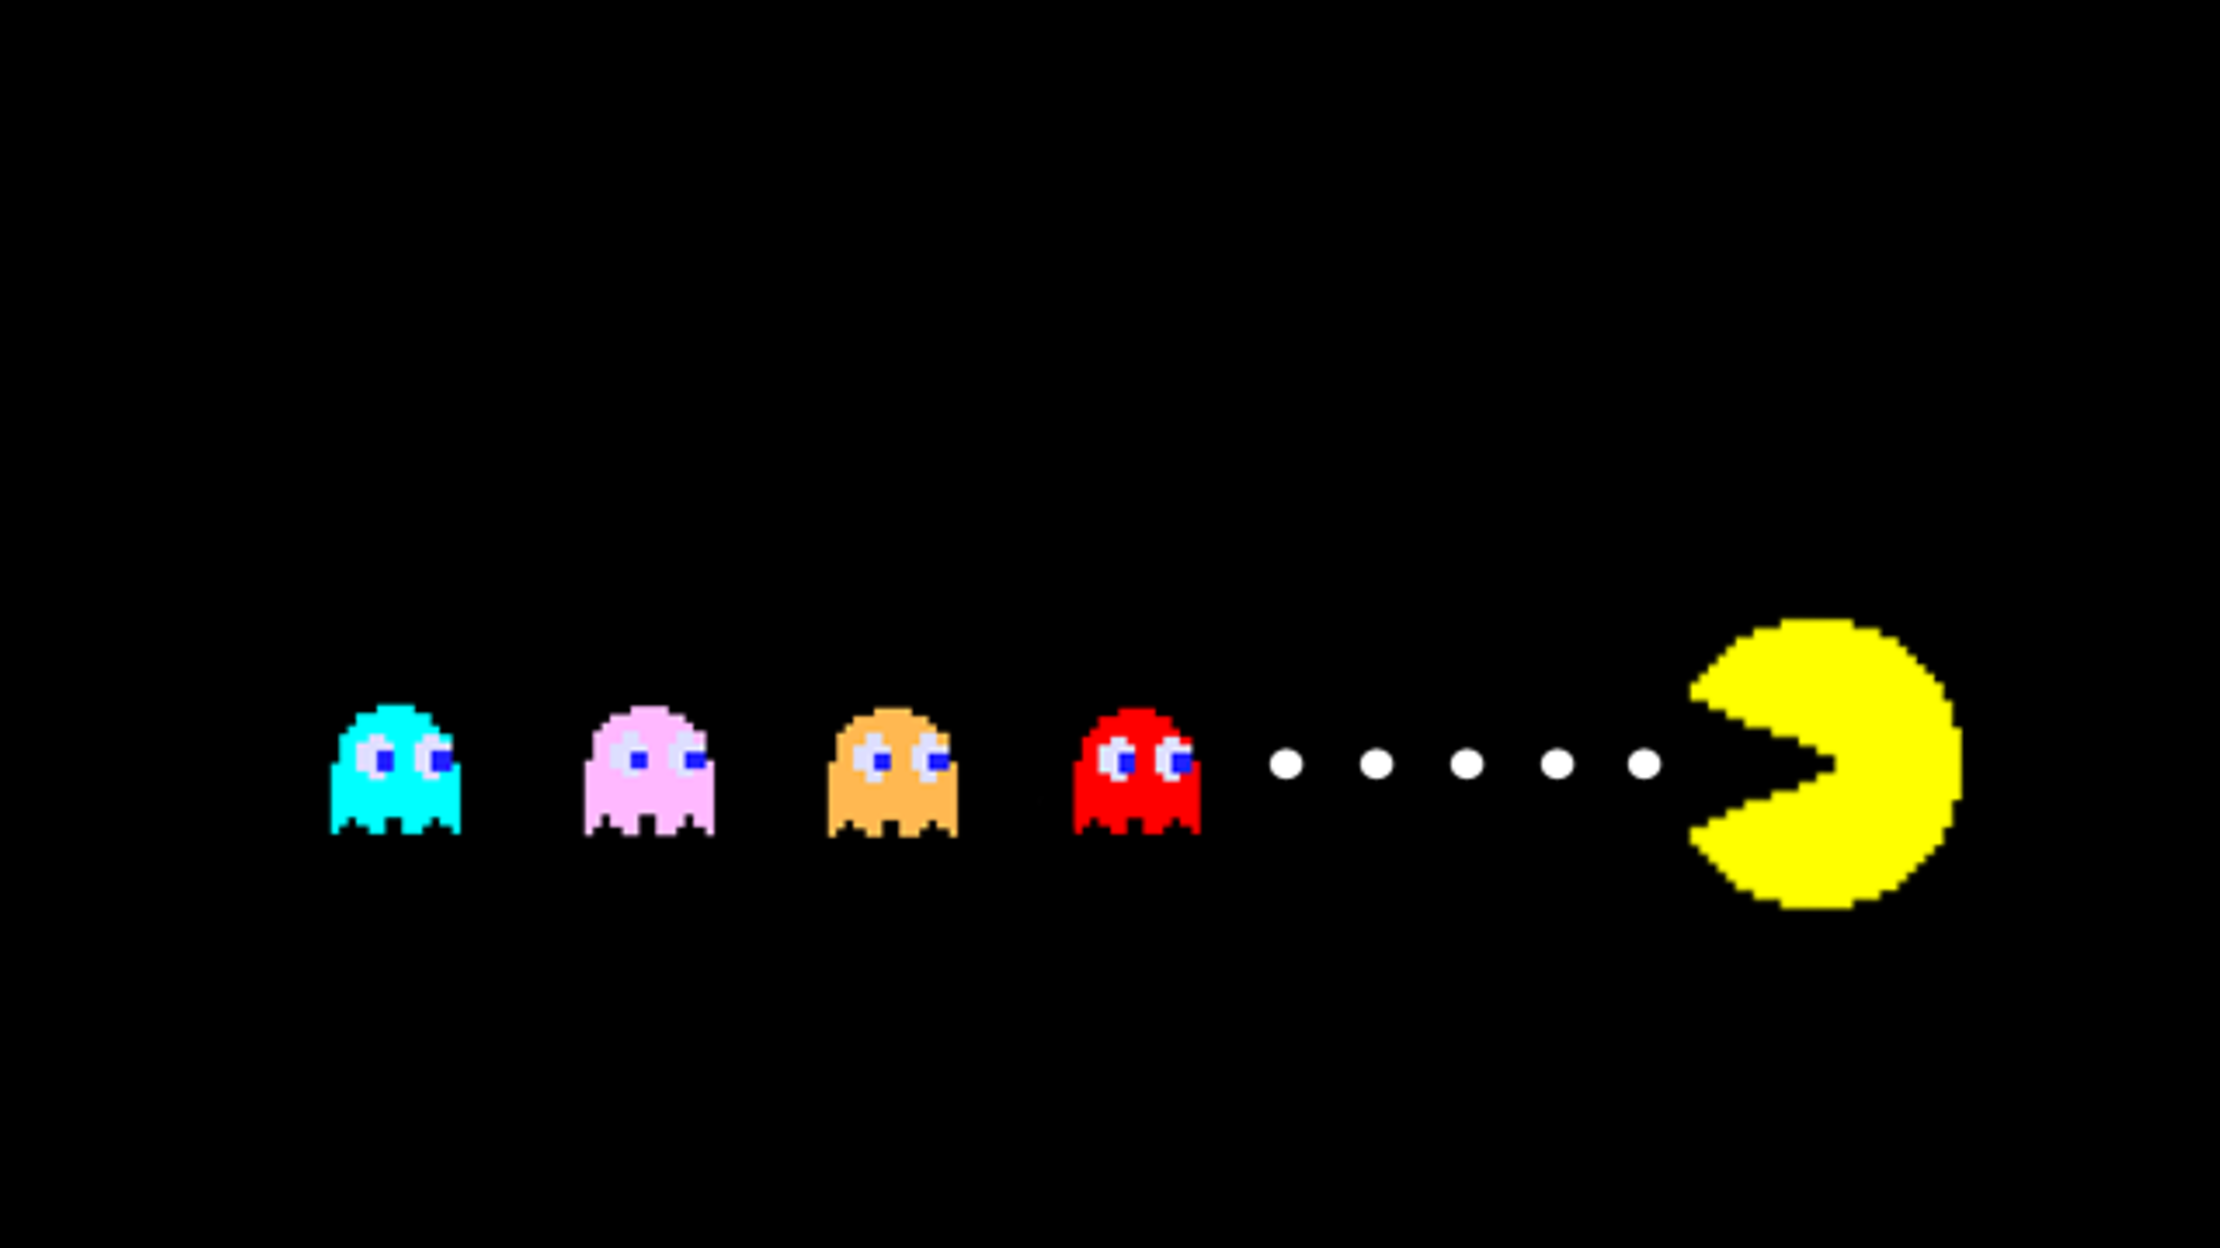 It's just a photo of Wild Images of Pac Man